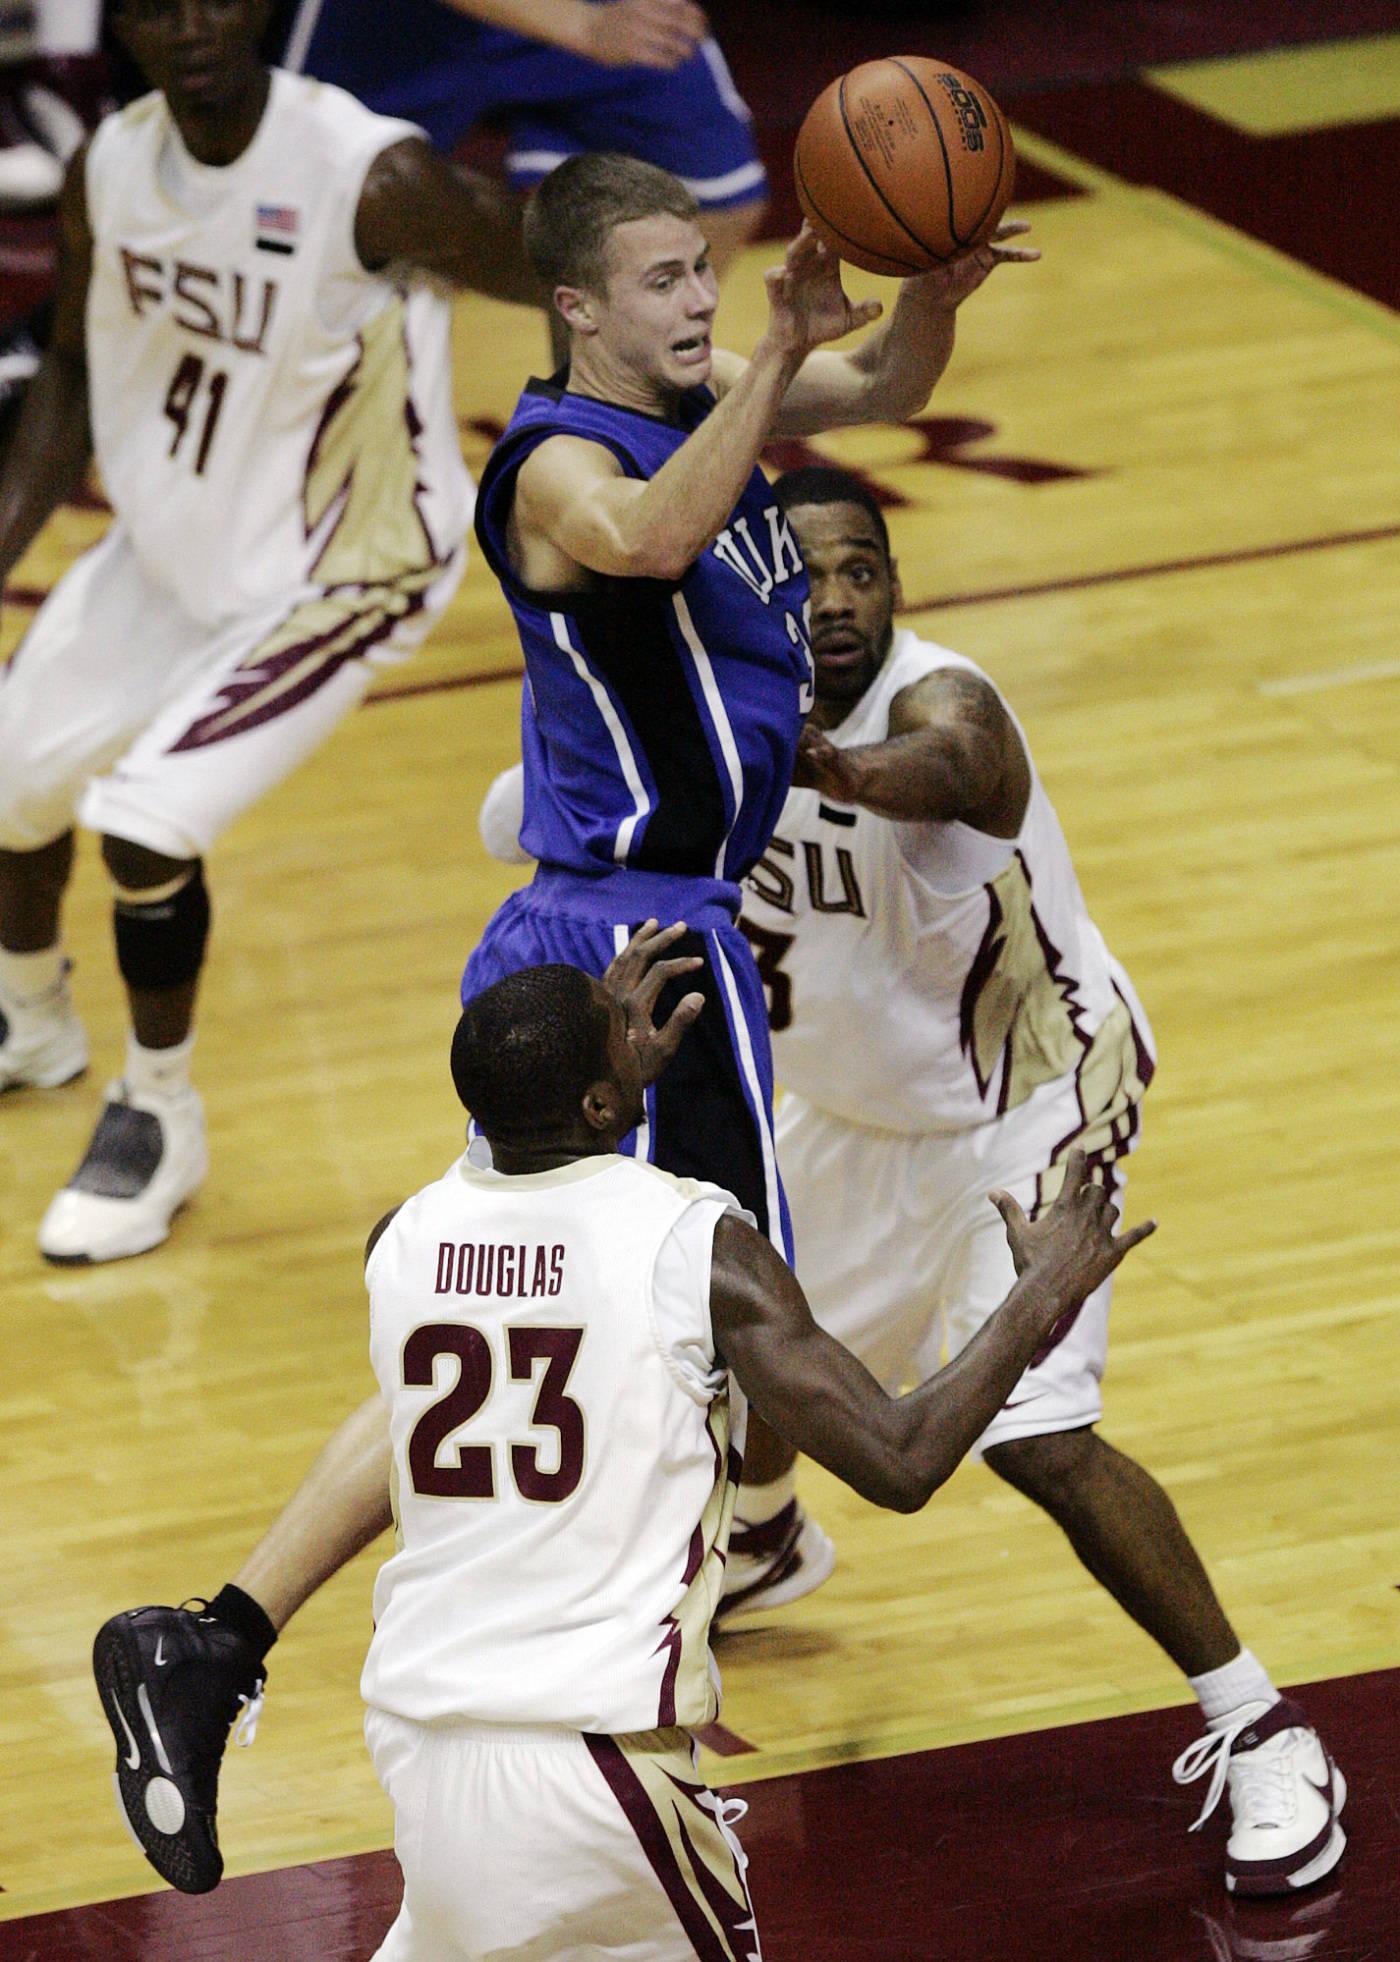 Duke's Jon Scheyer is forced to pass as he tries to penetrate the defense of Florida State's Toney Douglas and Isaiah Swann in the first half of a college basketball game on Wednesday, Jan. 16, 2008 in Tallahassee, Fla.